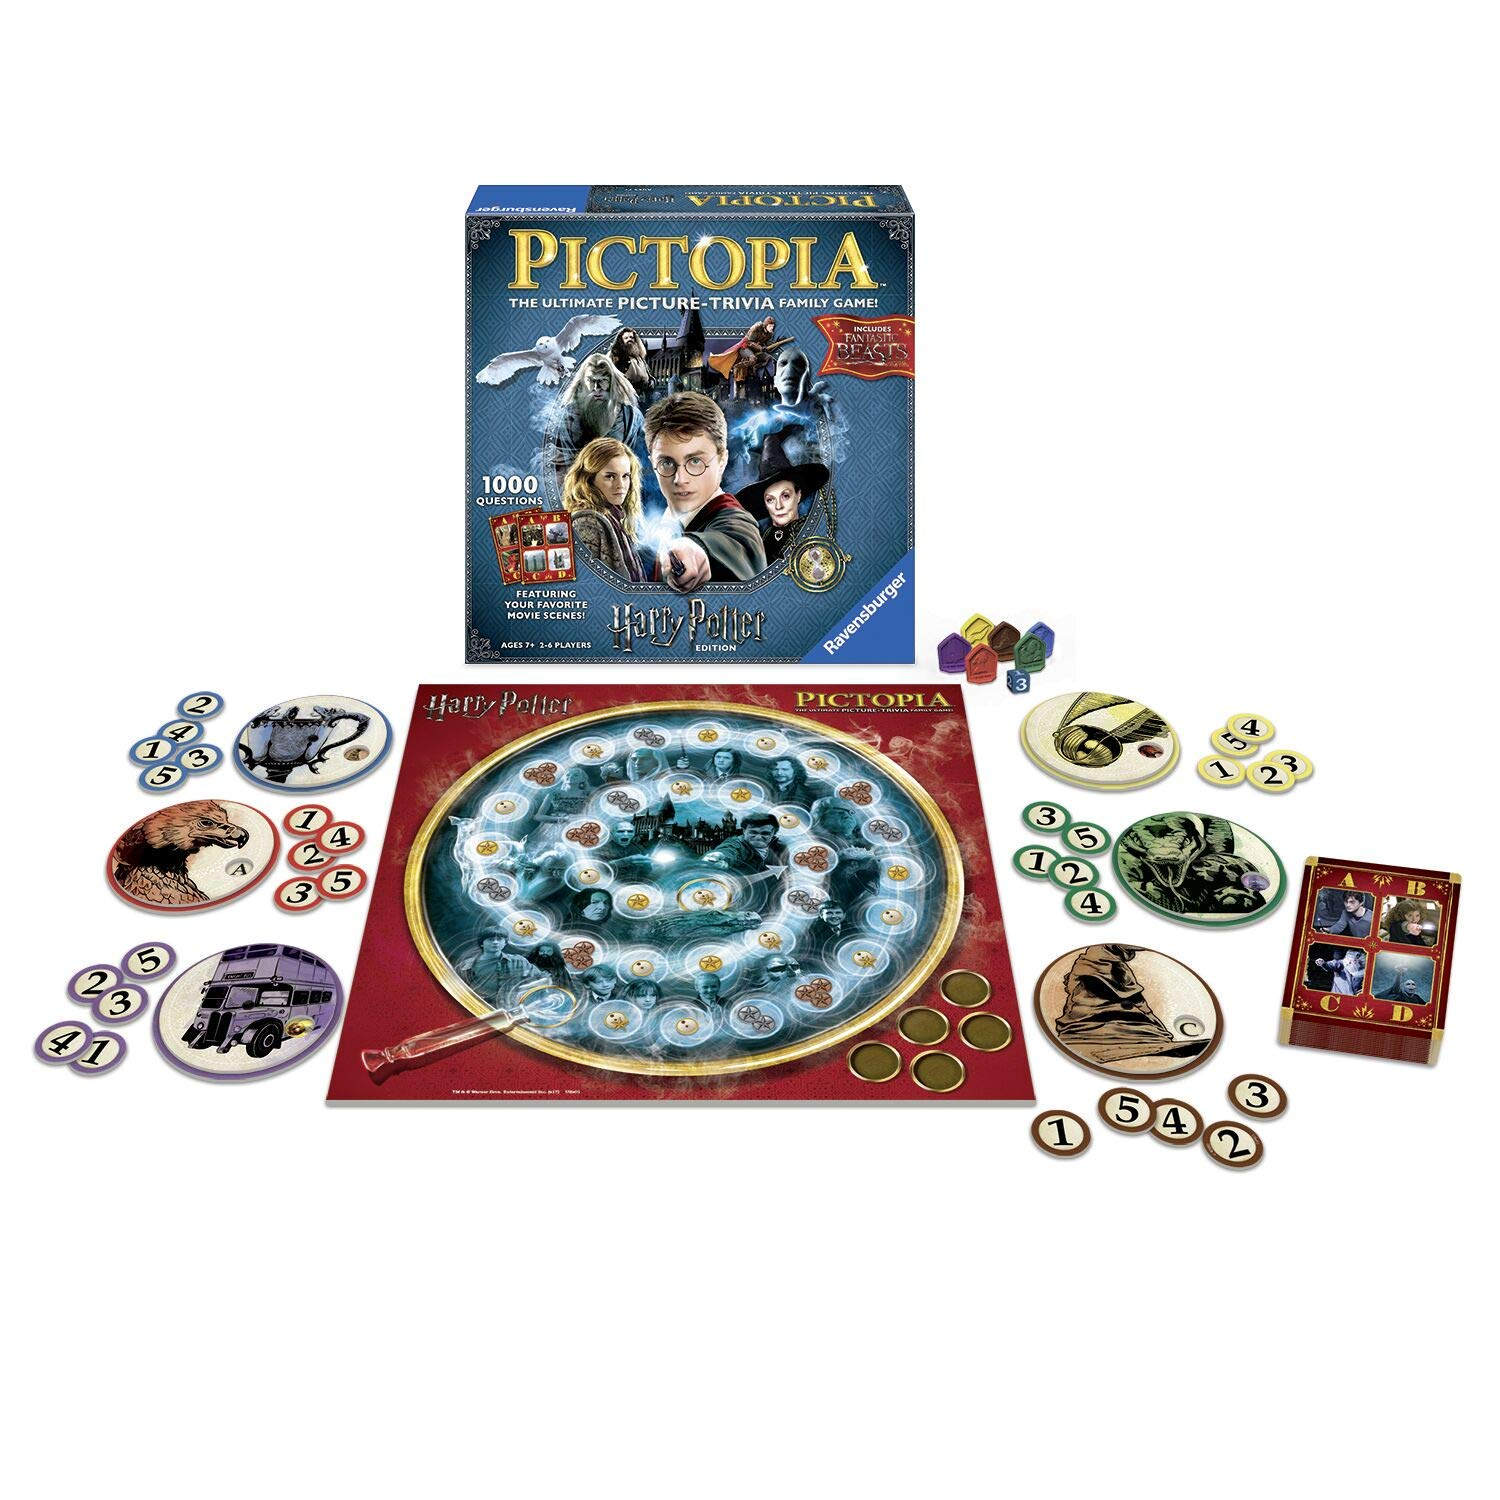 Wonder Forge Ravensburger Pictopia: Harry Potter Edition Family Trivia Board Game For Kids & Adults Age 10 & Up - Perfect Gift for Any Harry Potter Fan!